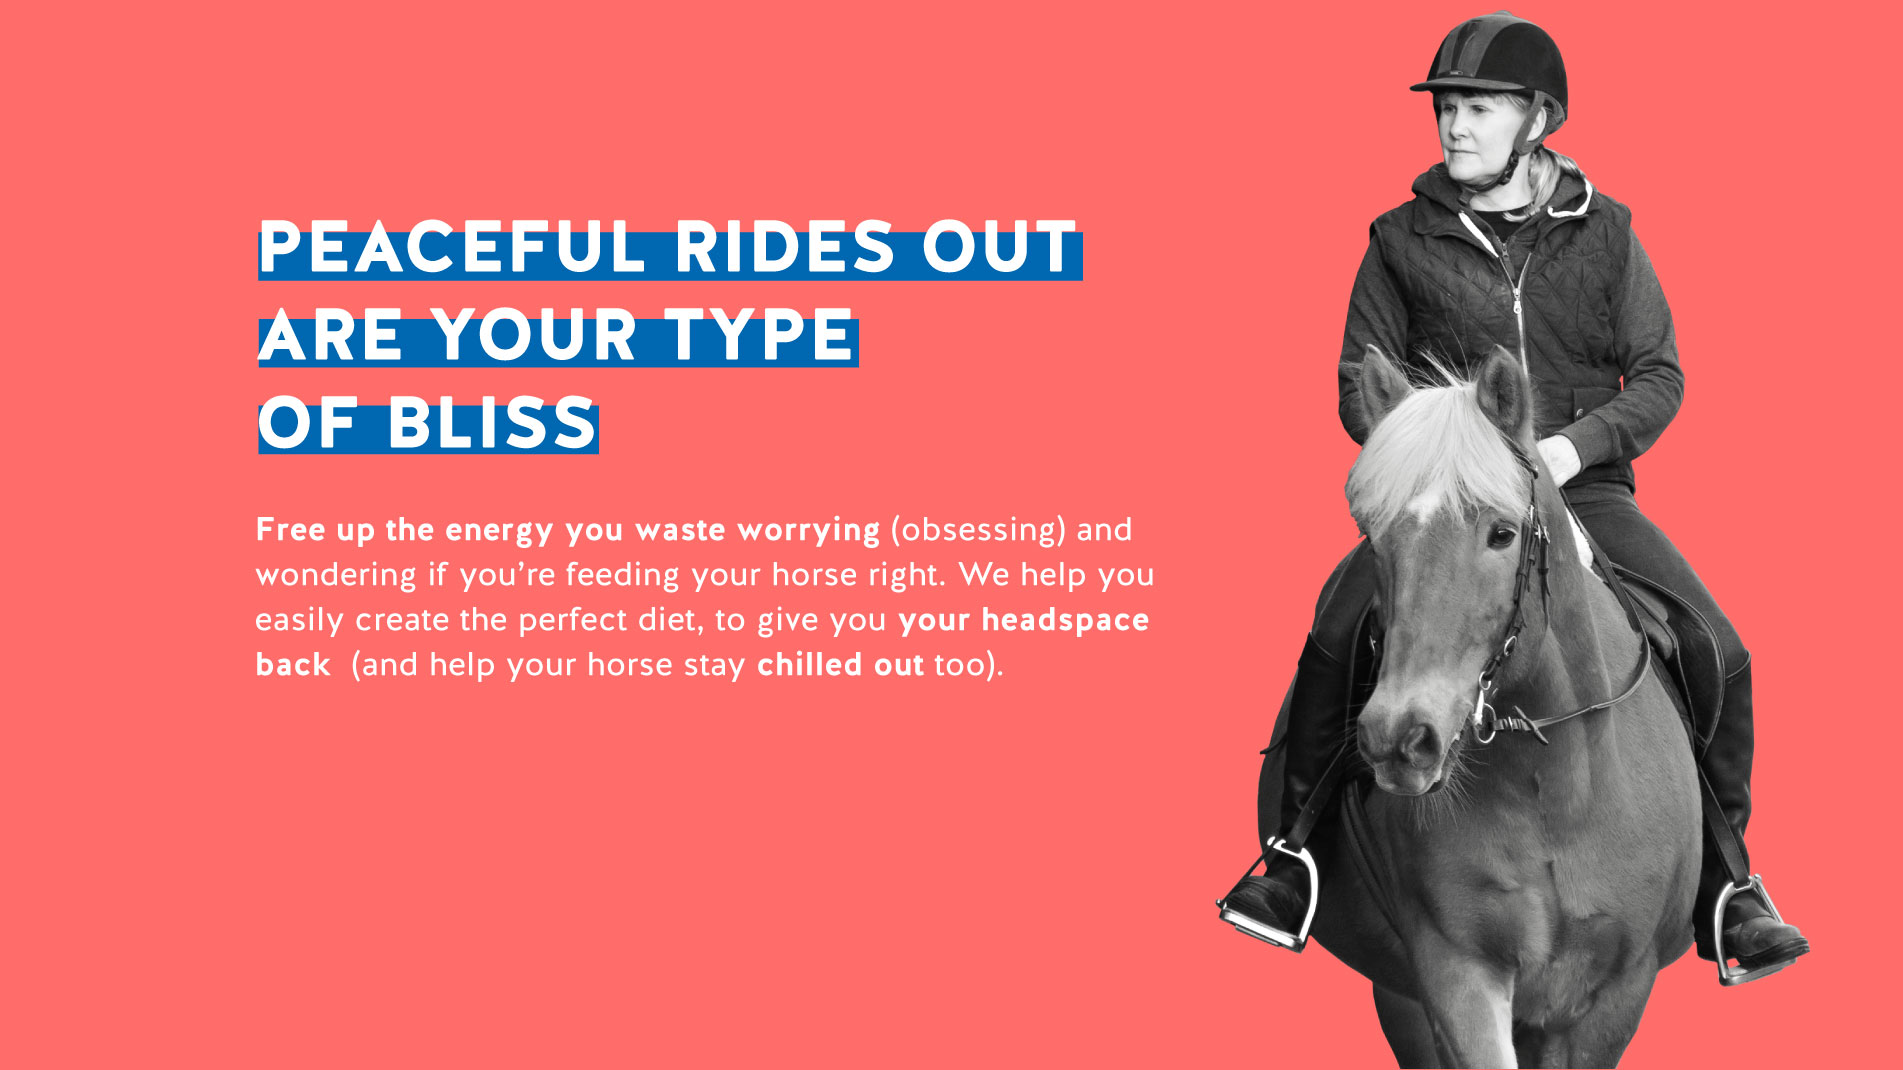 FeedXL promotion showing female rider on a brown horse.